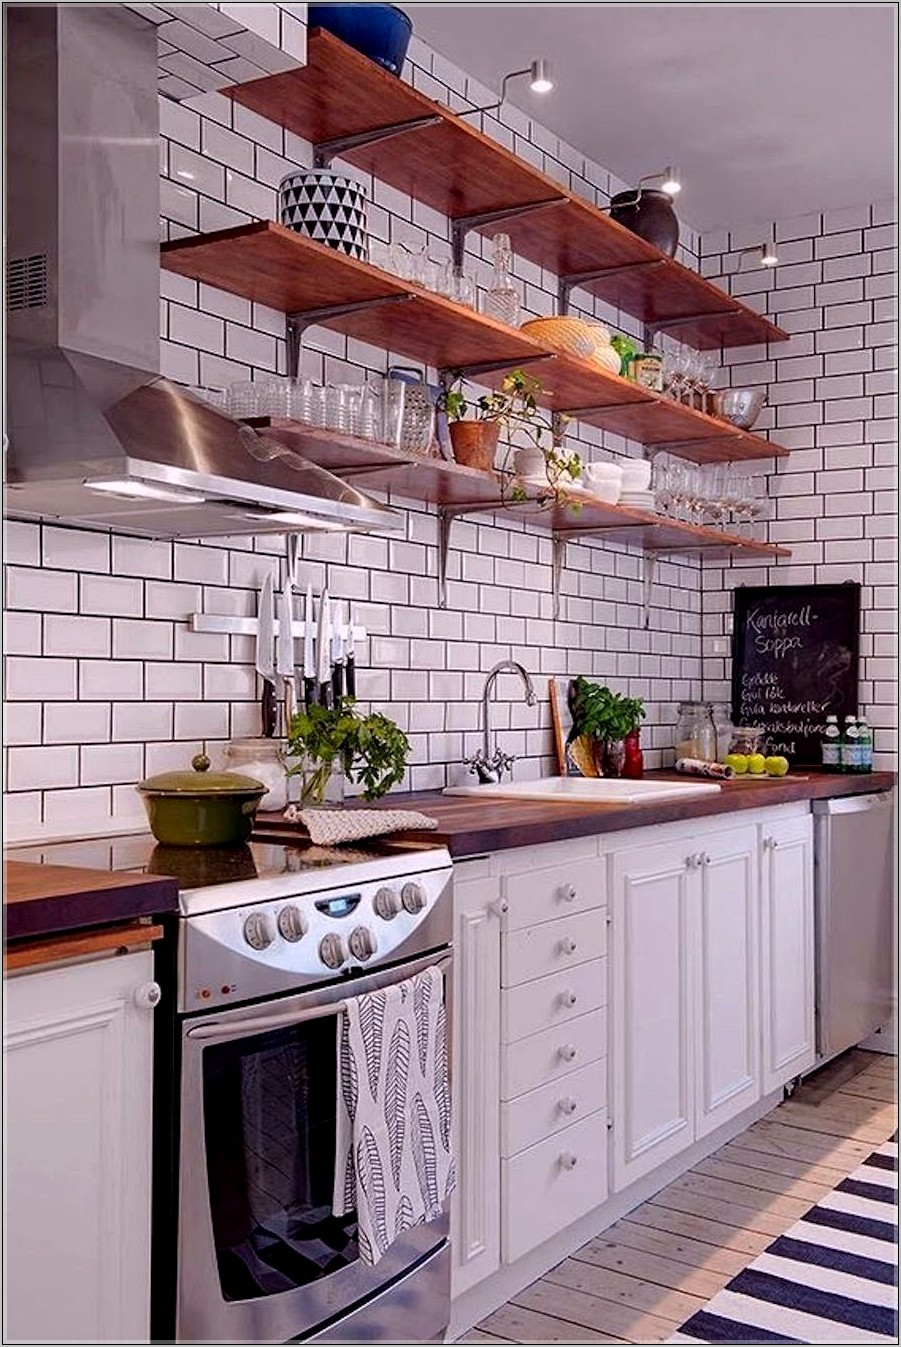 Decorative Kitchen Storage Shelves